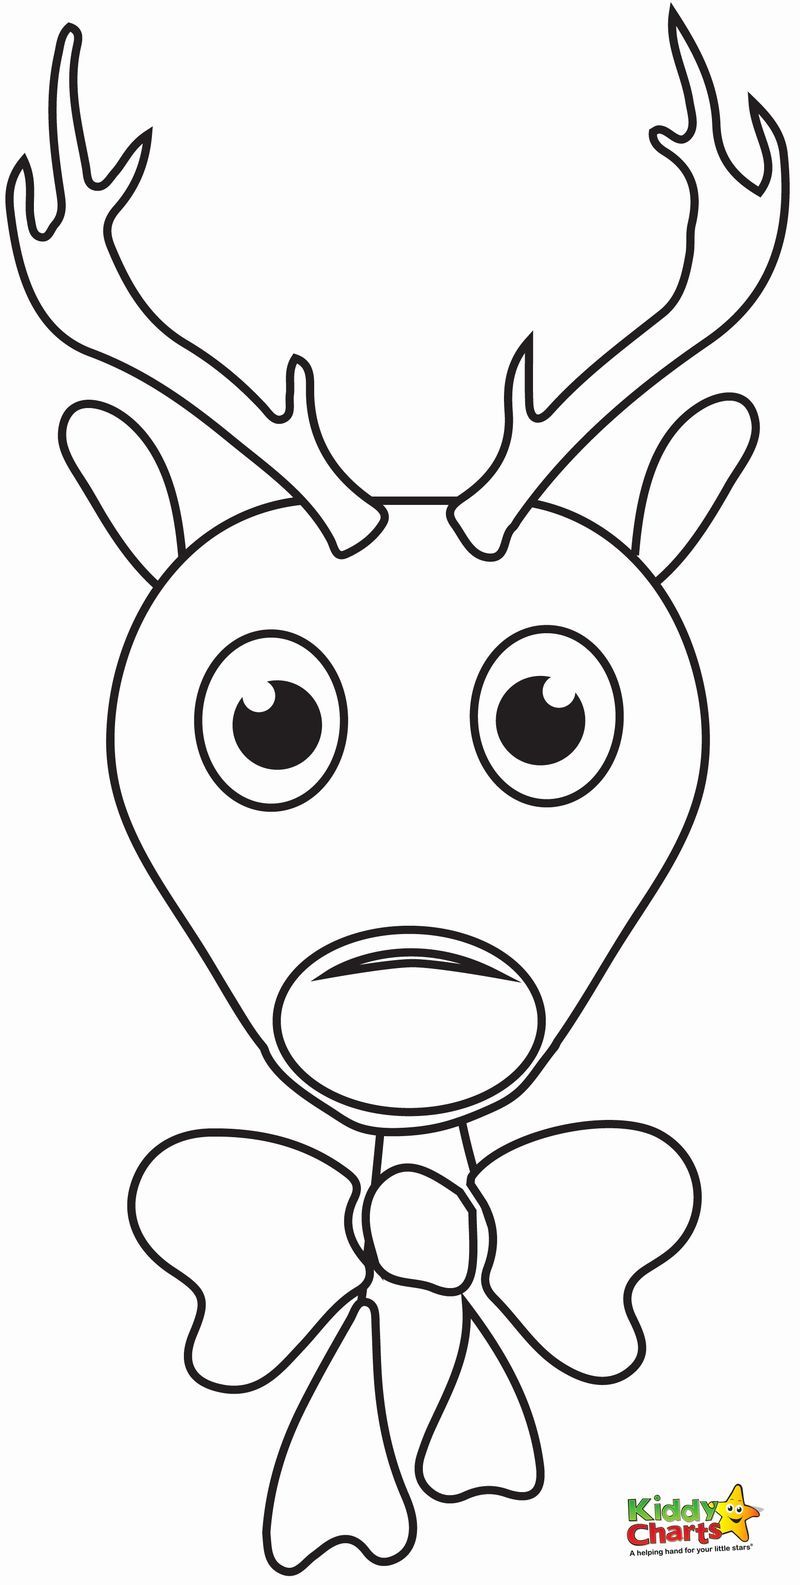 Cool Reindeer Coloring Pages Ideas For Children Rudolph Coloring